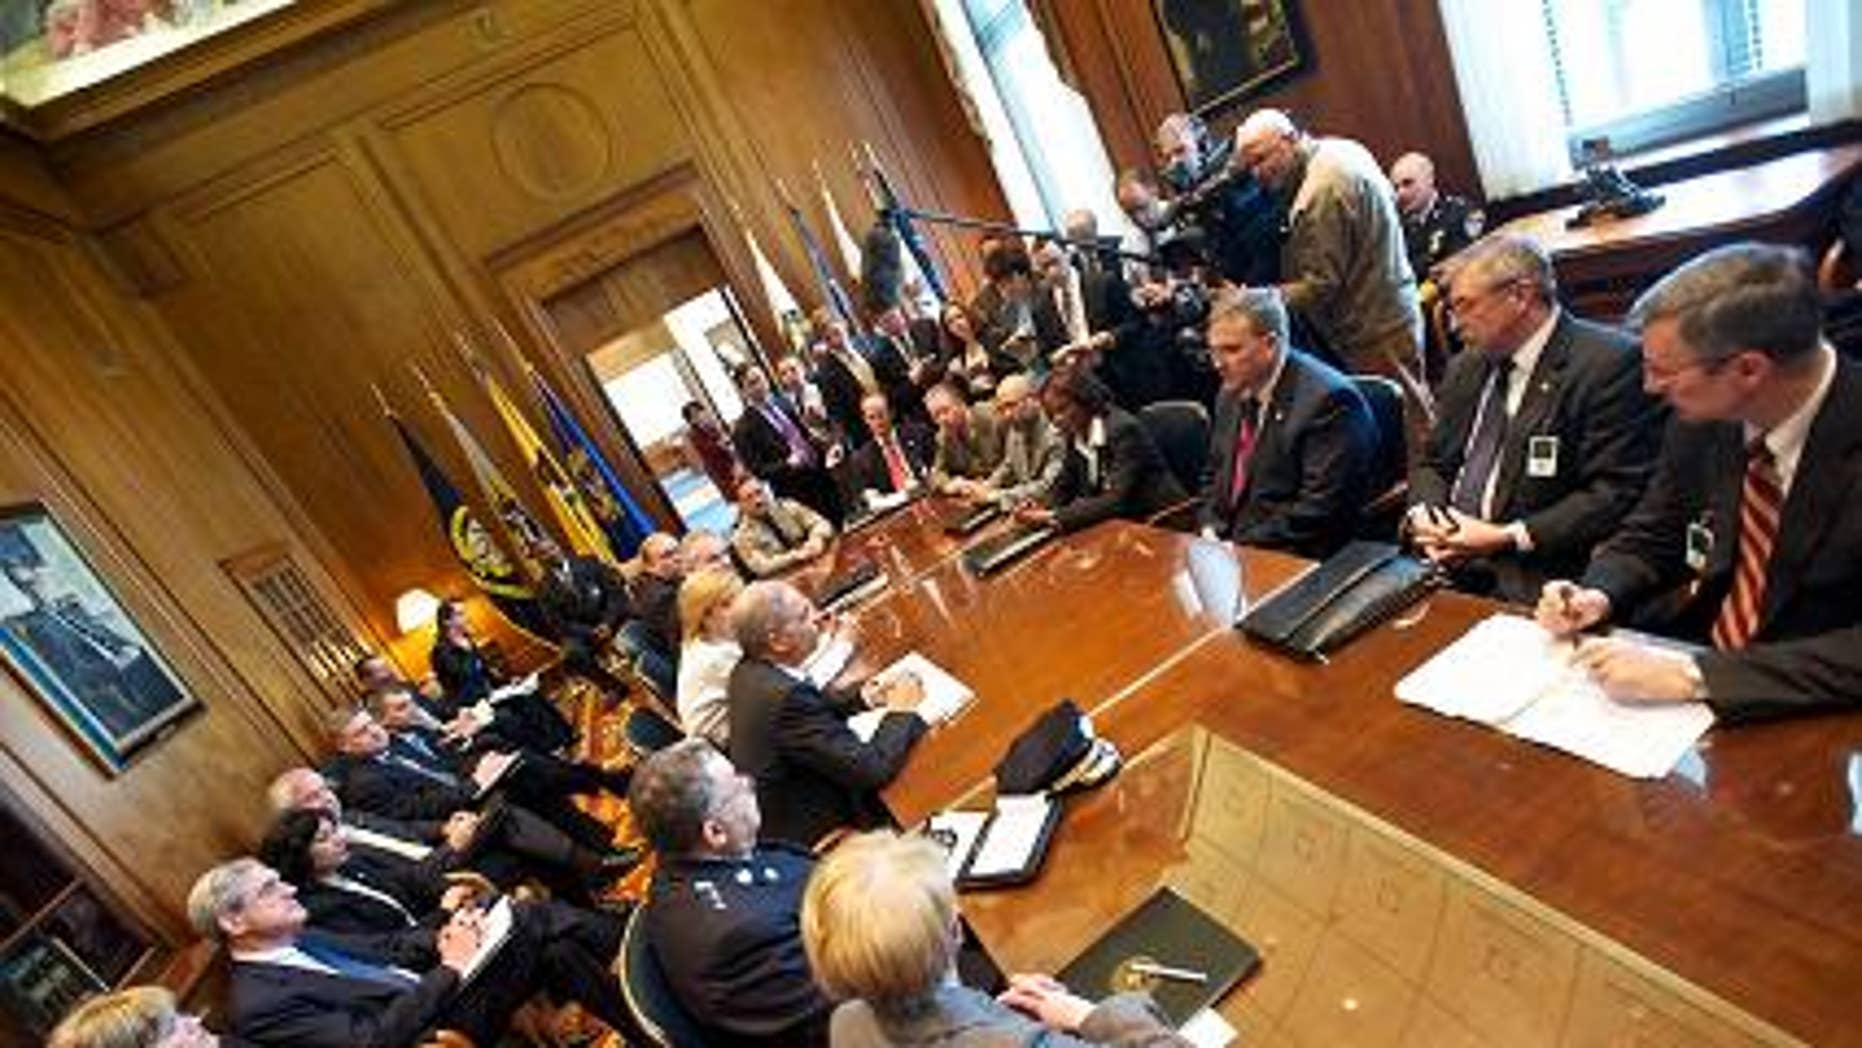 Reporters listen to Attorney General Eric Holder before his meeting with police officials, March 22